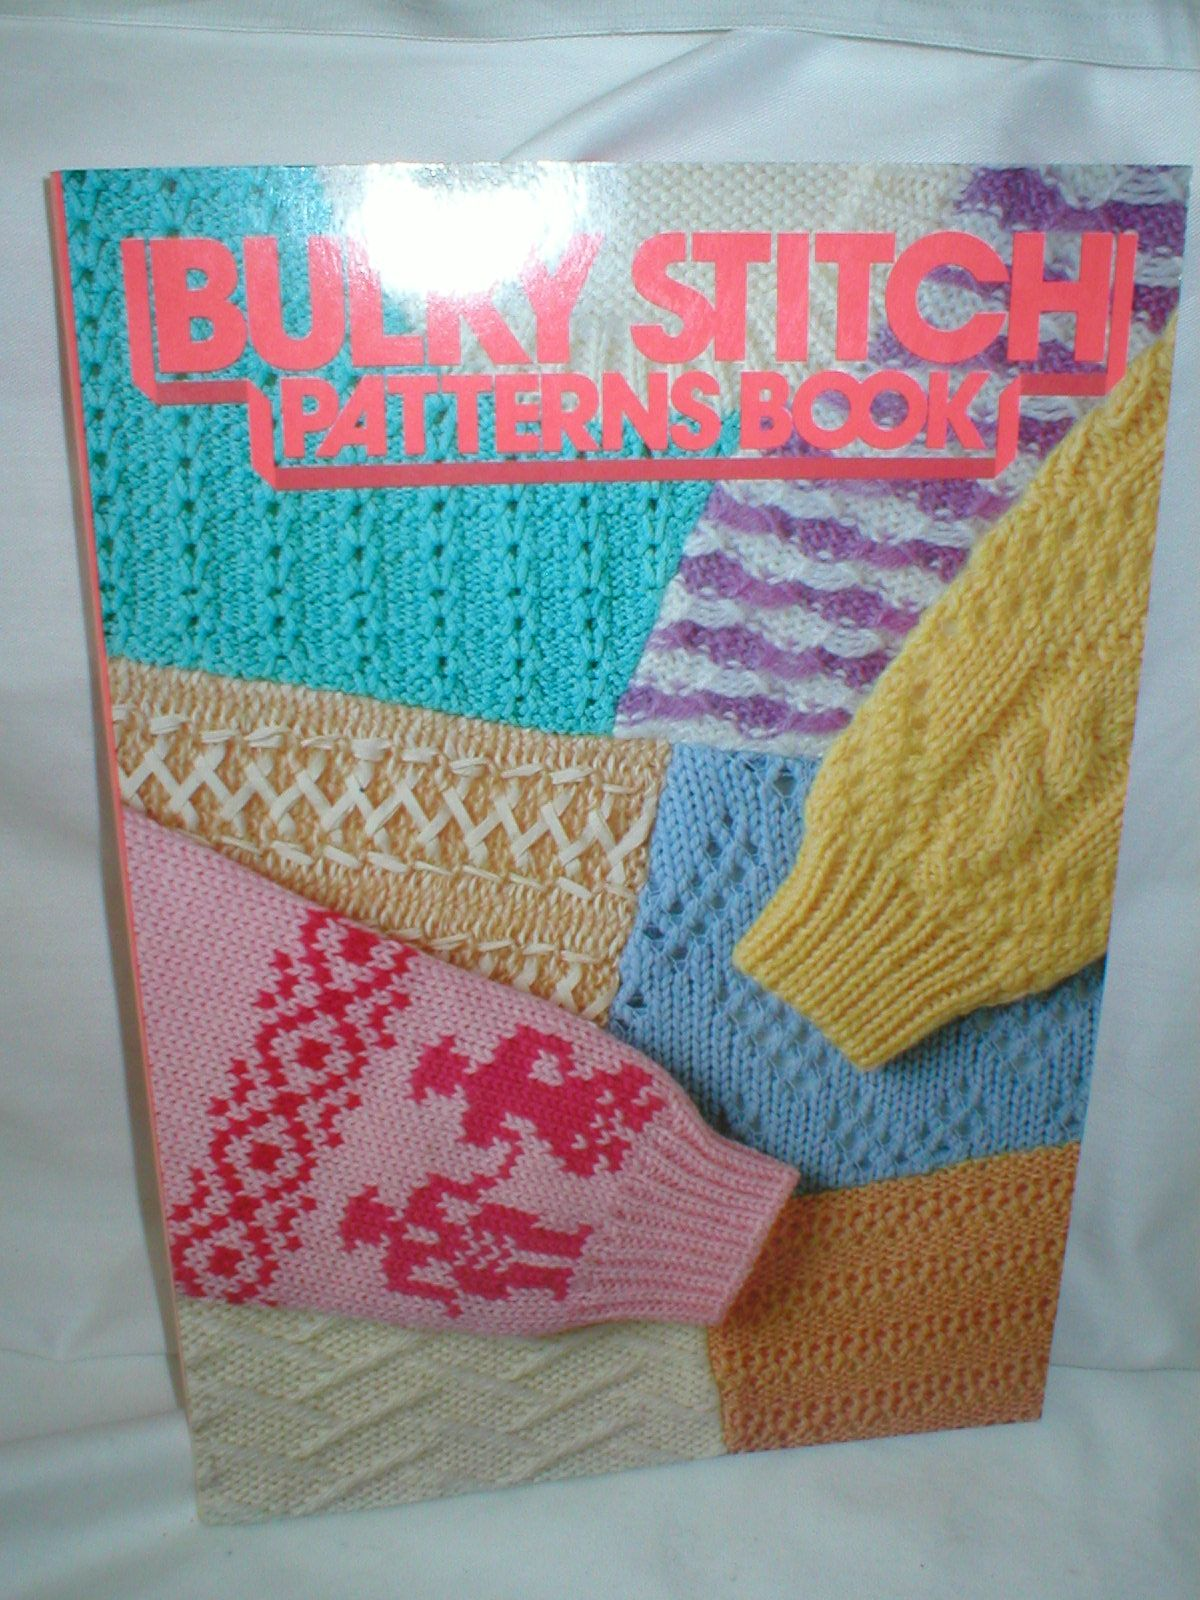 Knitting Stitches Book : Bulky Stitch Patterns Book for Brother Chunky Knitting Machine B459